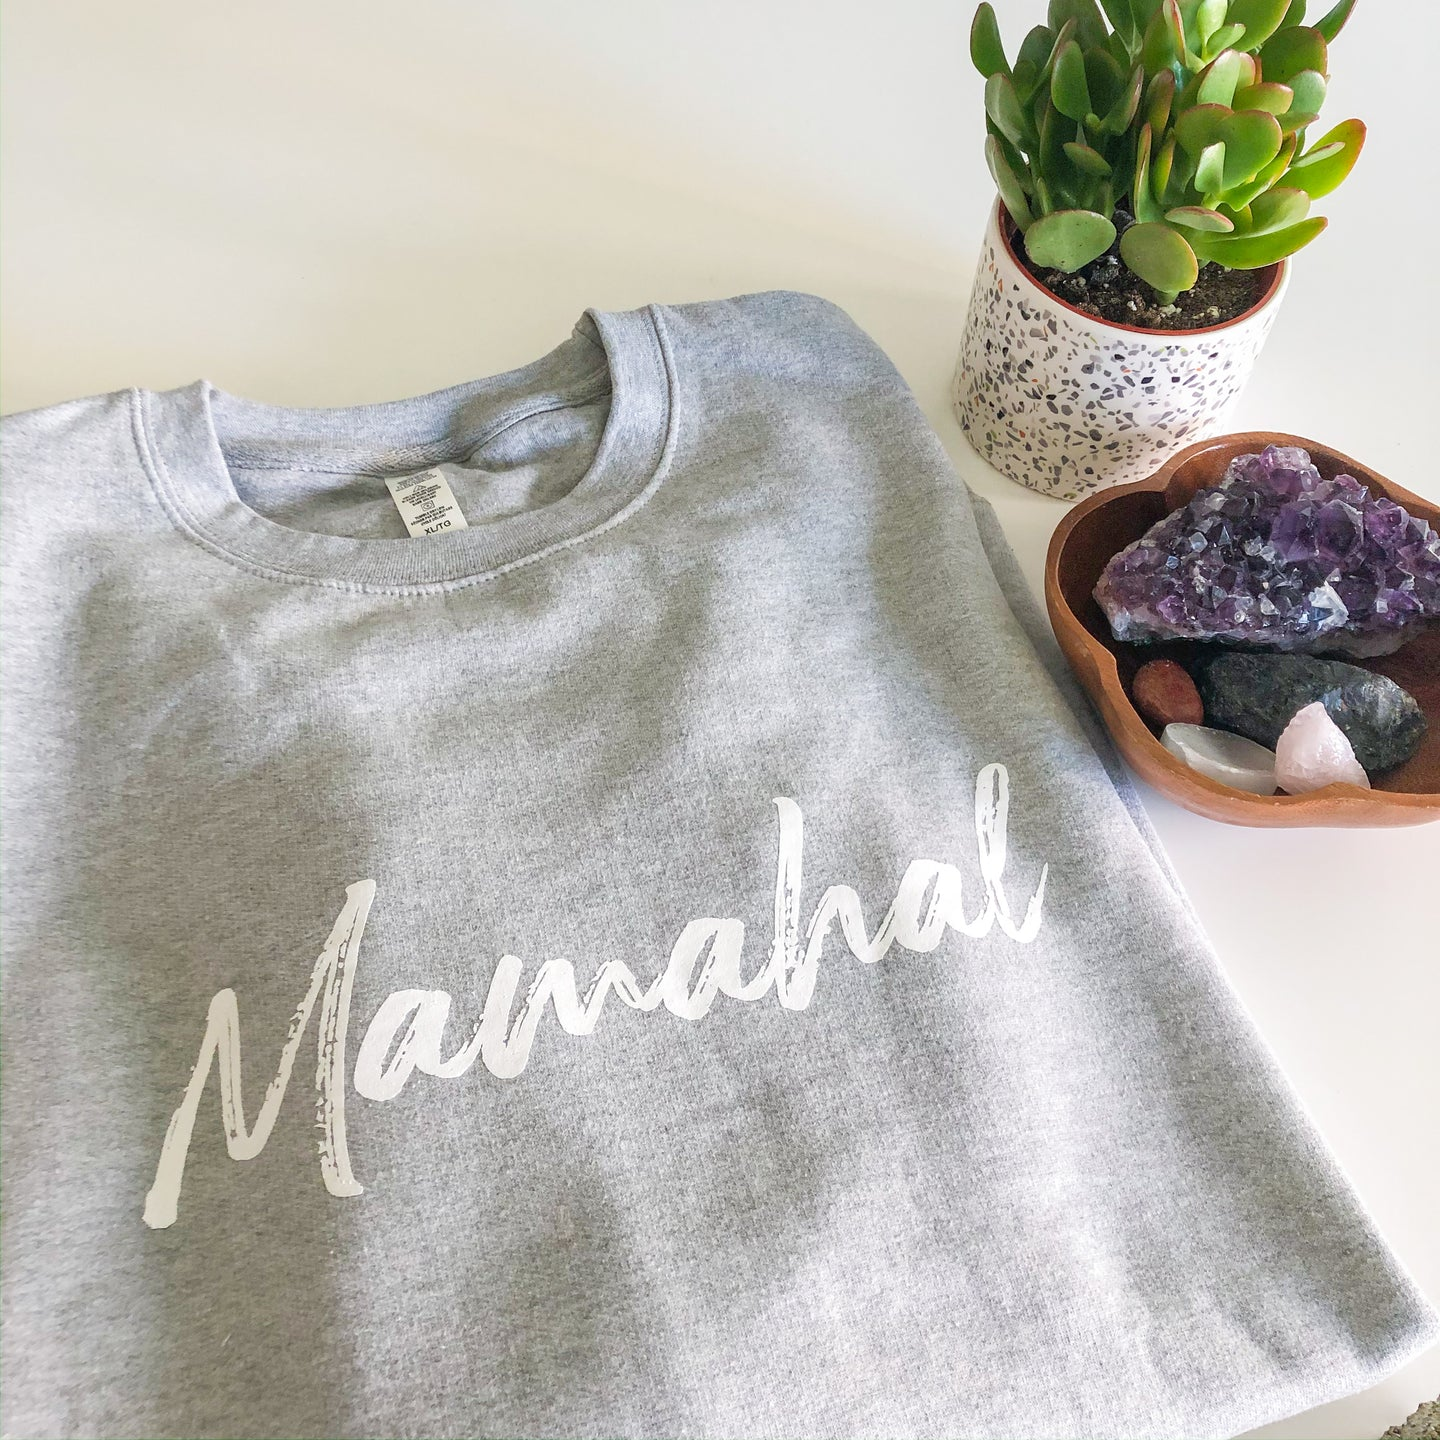 MAMAhal Sweatshirt - Gigil Clothing